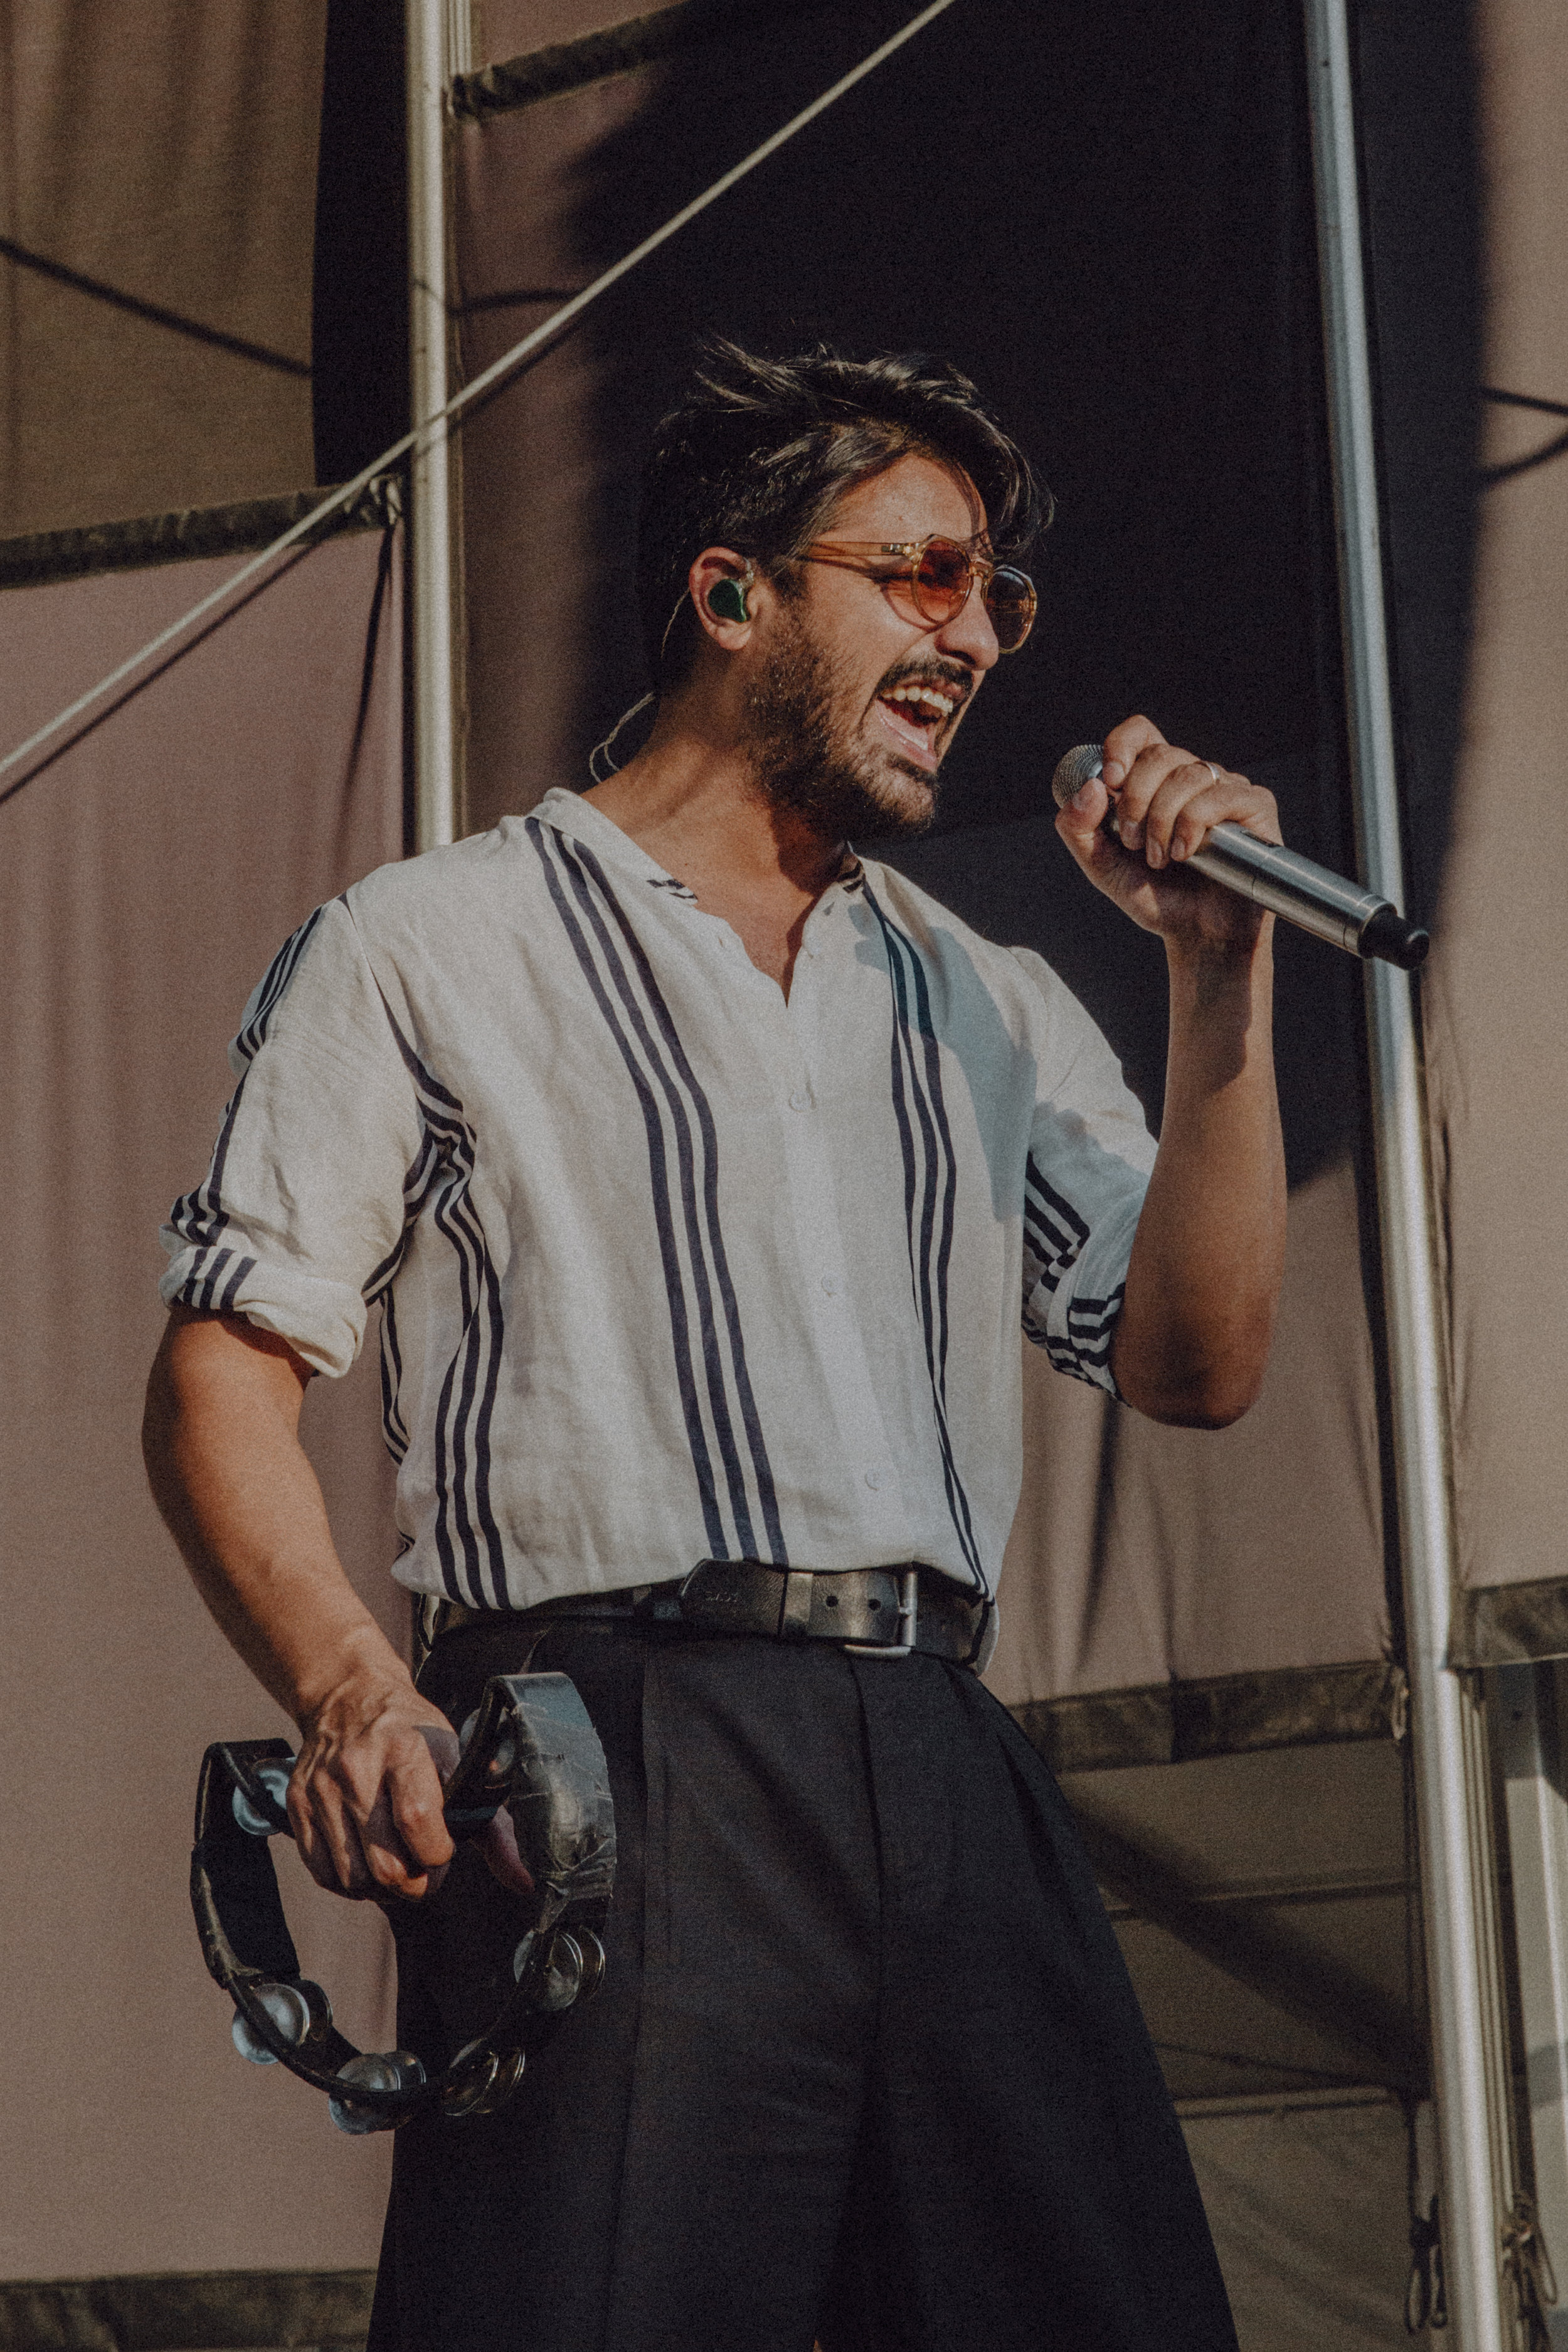 WILLIAMS_YOUNGTHEGIANT-13.jpg